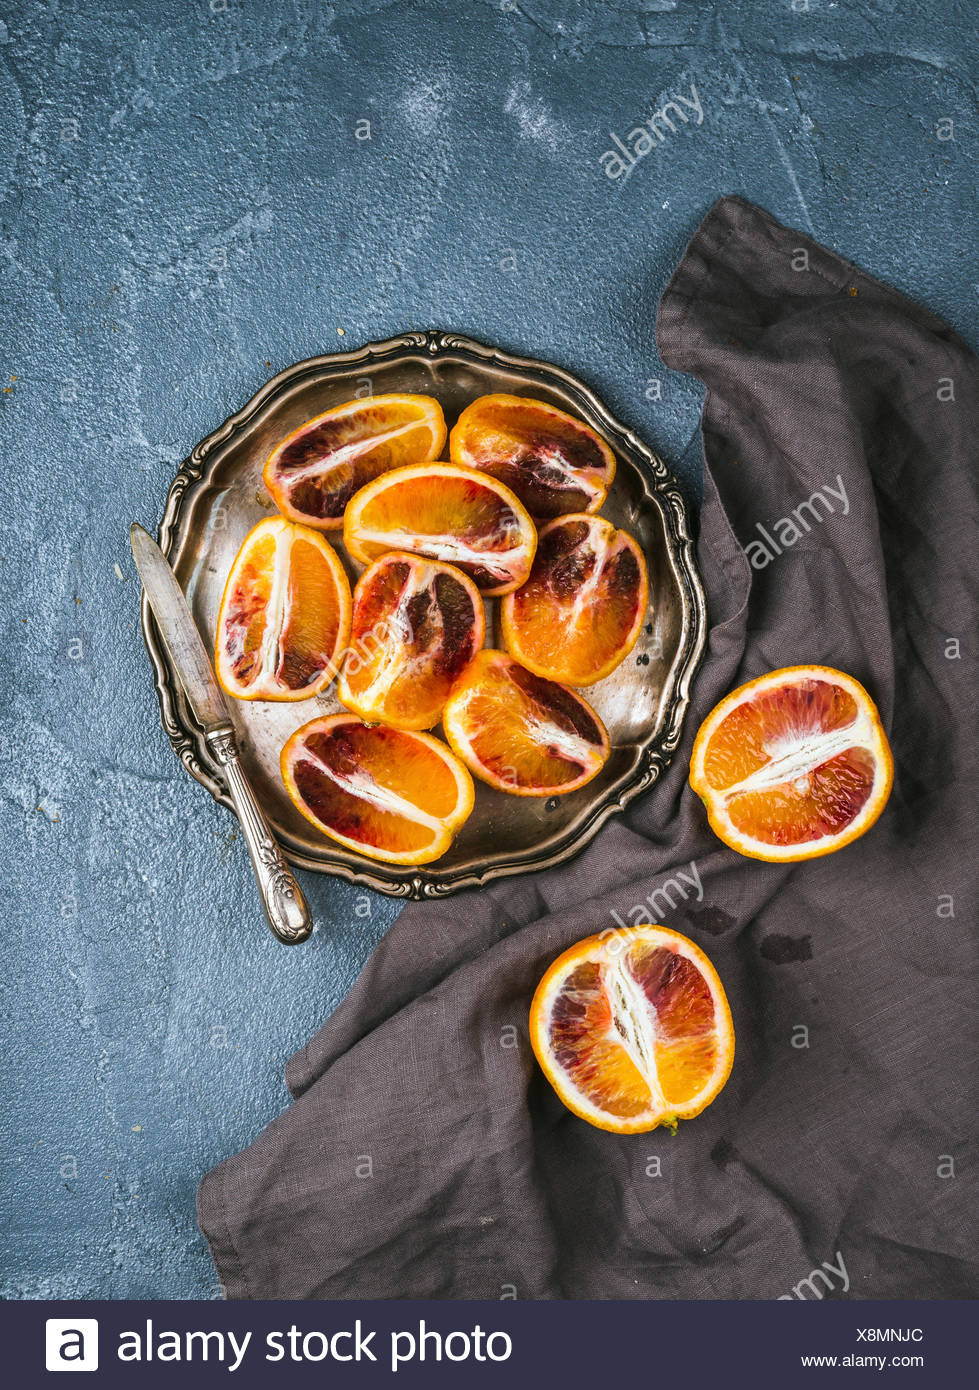 BLOODY RED SICILIAN ORANGES CUT INTO QUARTERS IN VINTAGE METAL PLATE OVER CONCRETE TEXTURED BACKGROUND - Stock Image